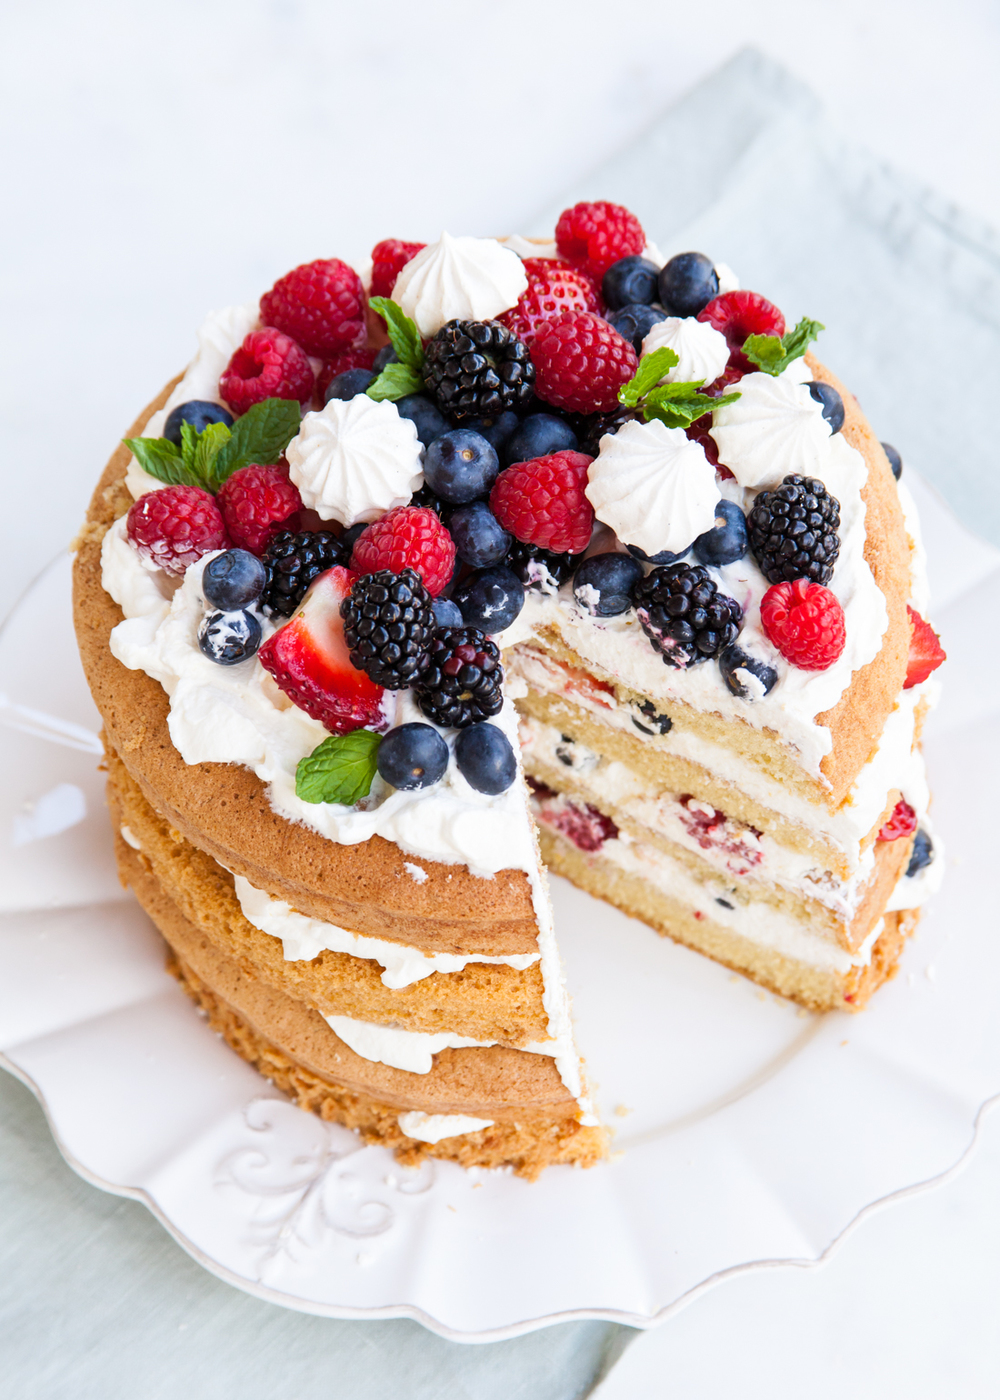 Sponge Cake With Berries And Cream